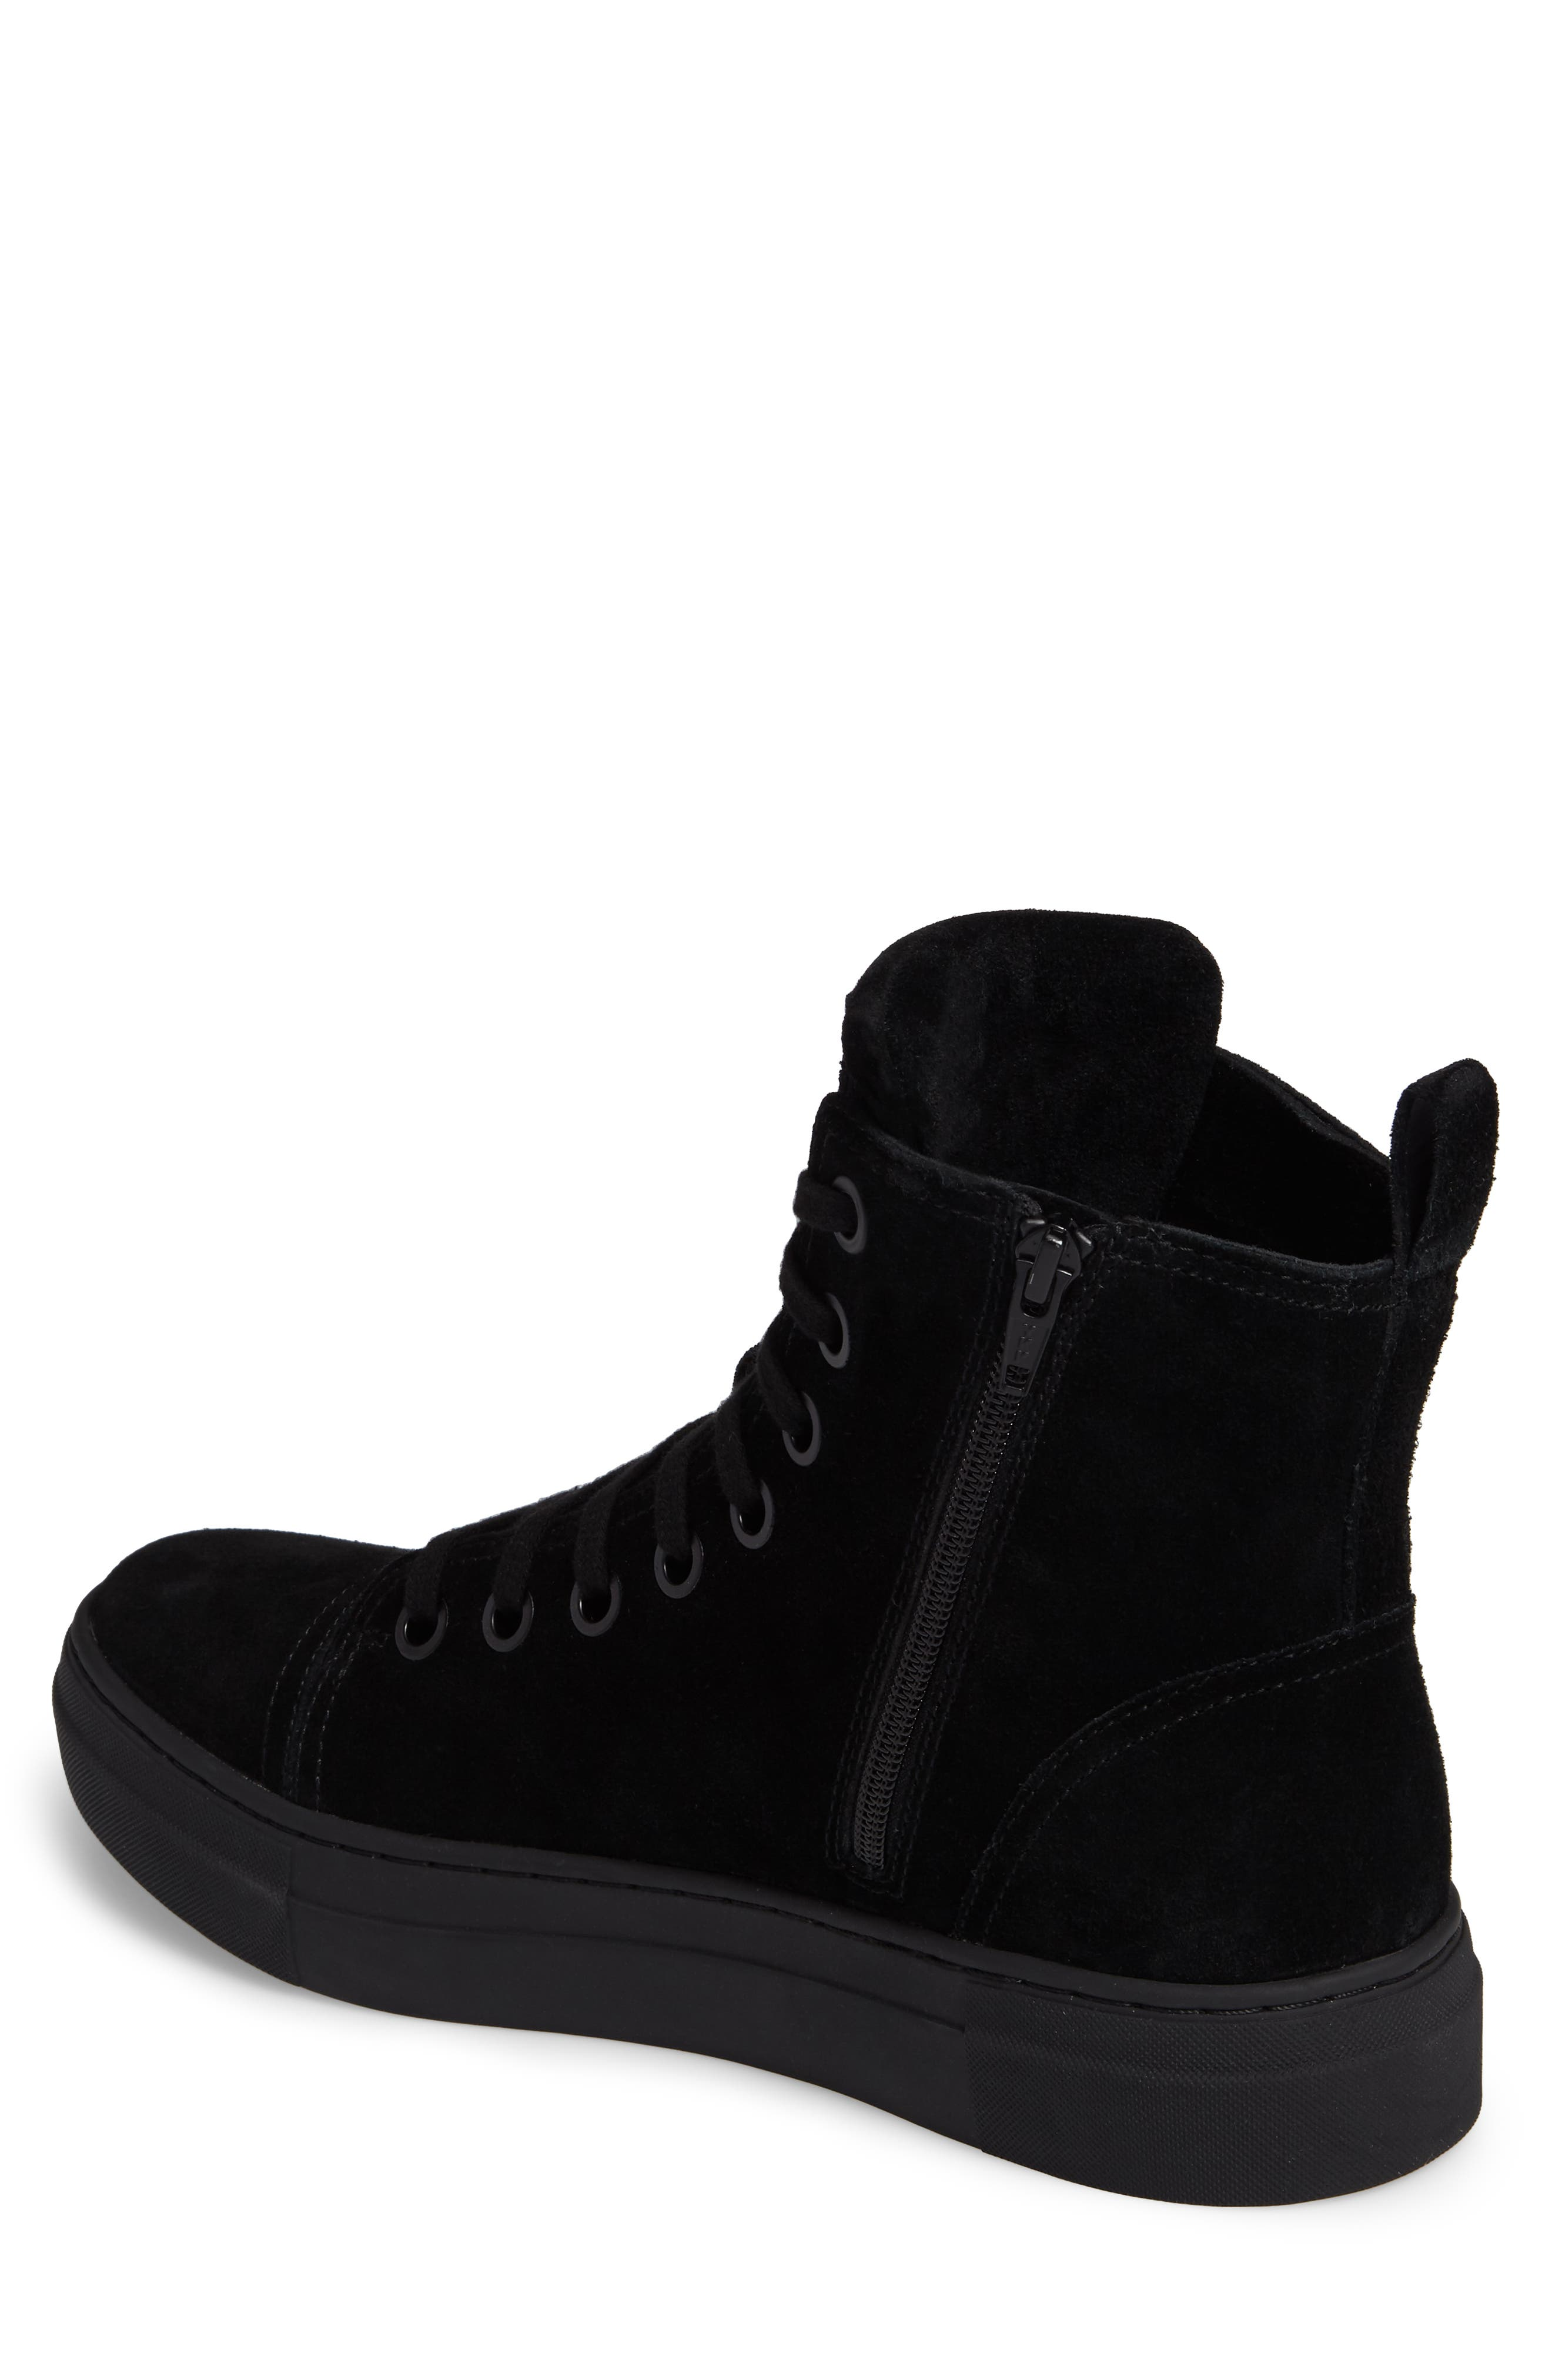 Ormisten Sneaker,                             Alternate thumbnail 2, color,                             015